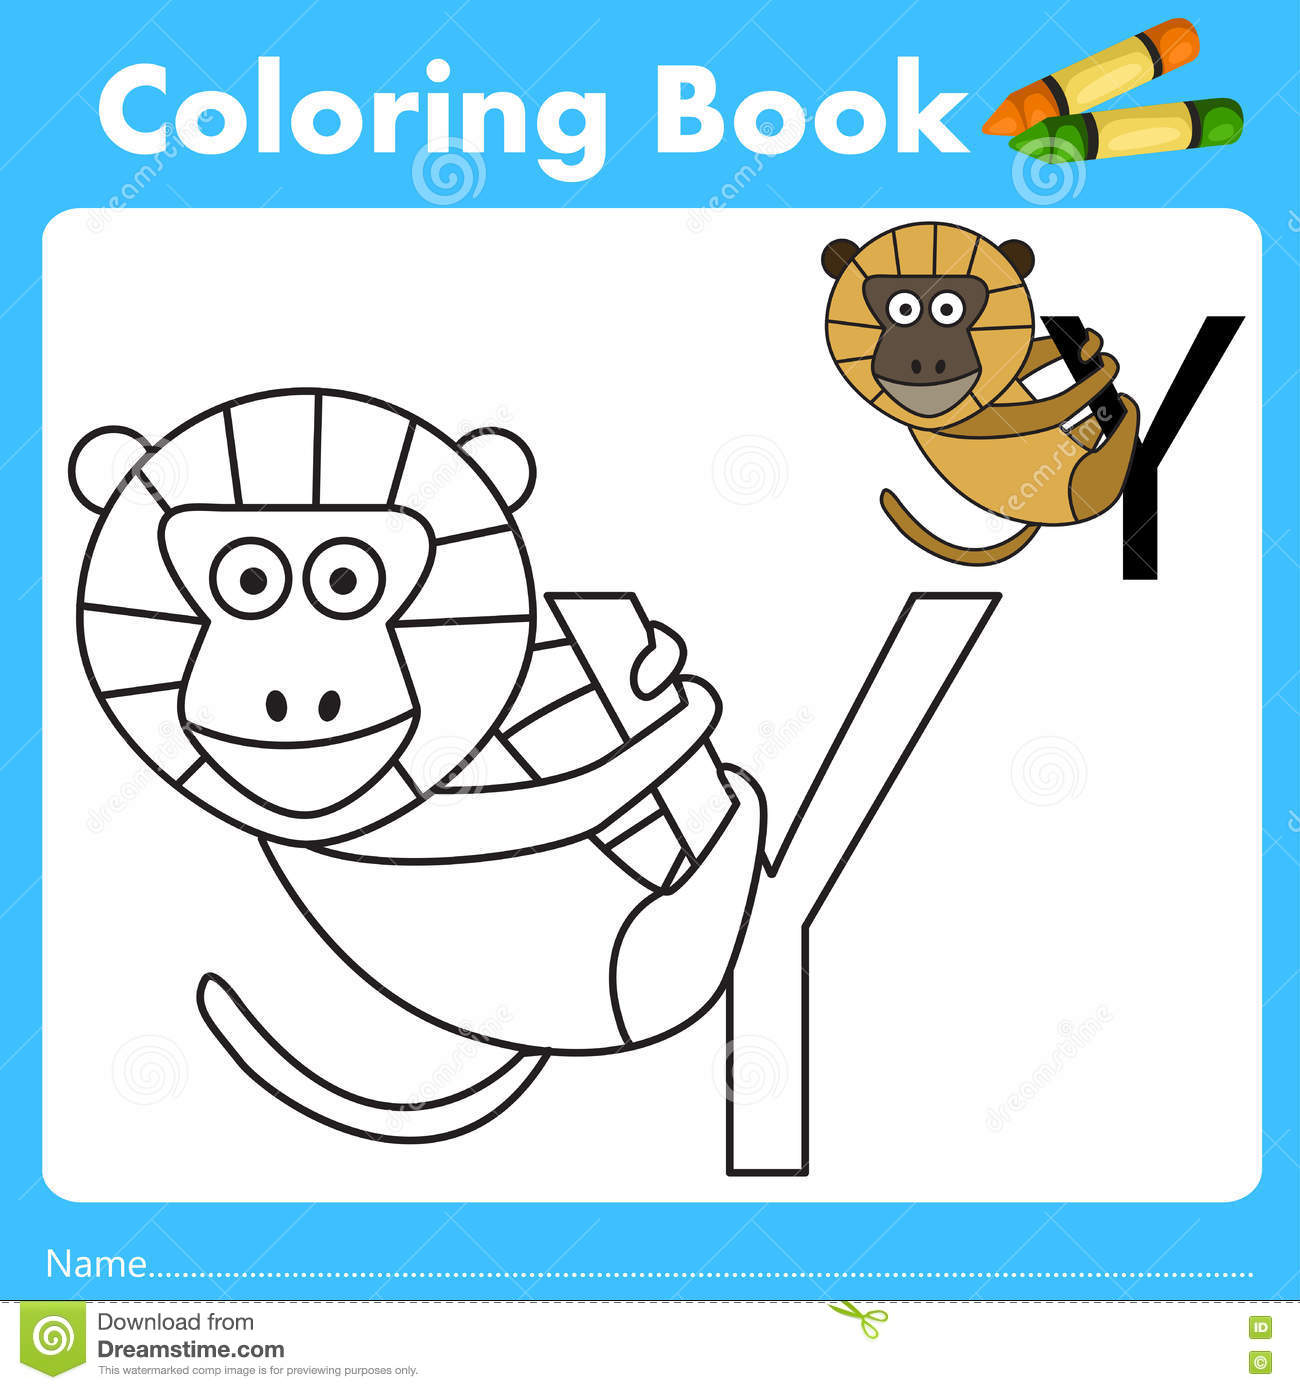 Book color illustrator - Illustrator Of Color Book With Yellow Baboon Animal